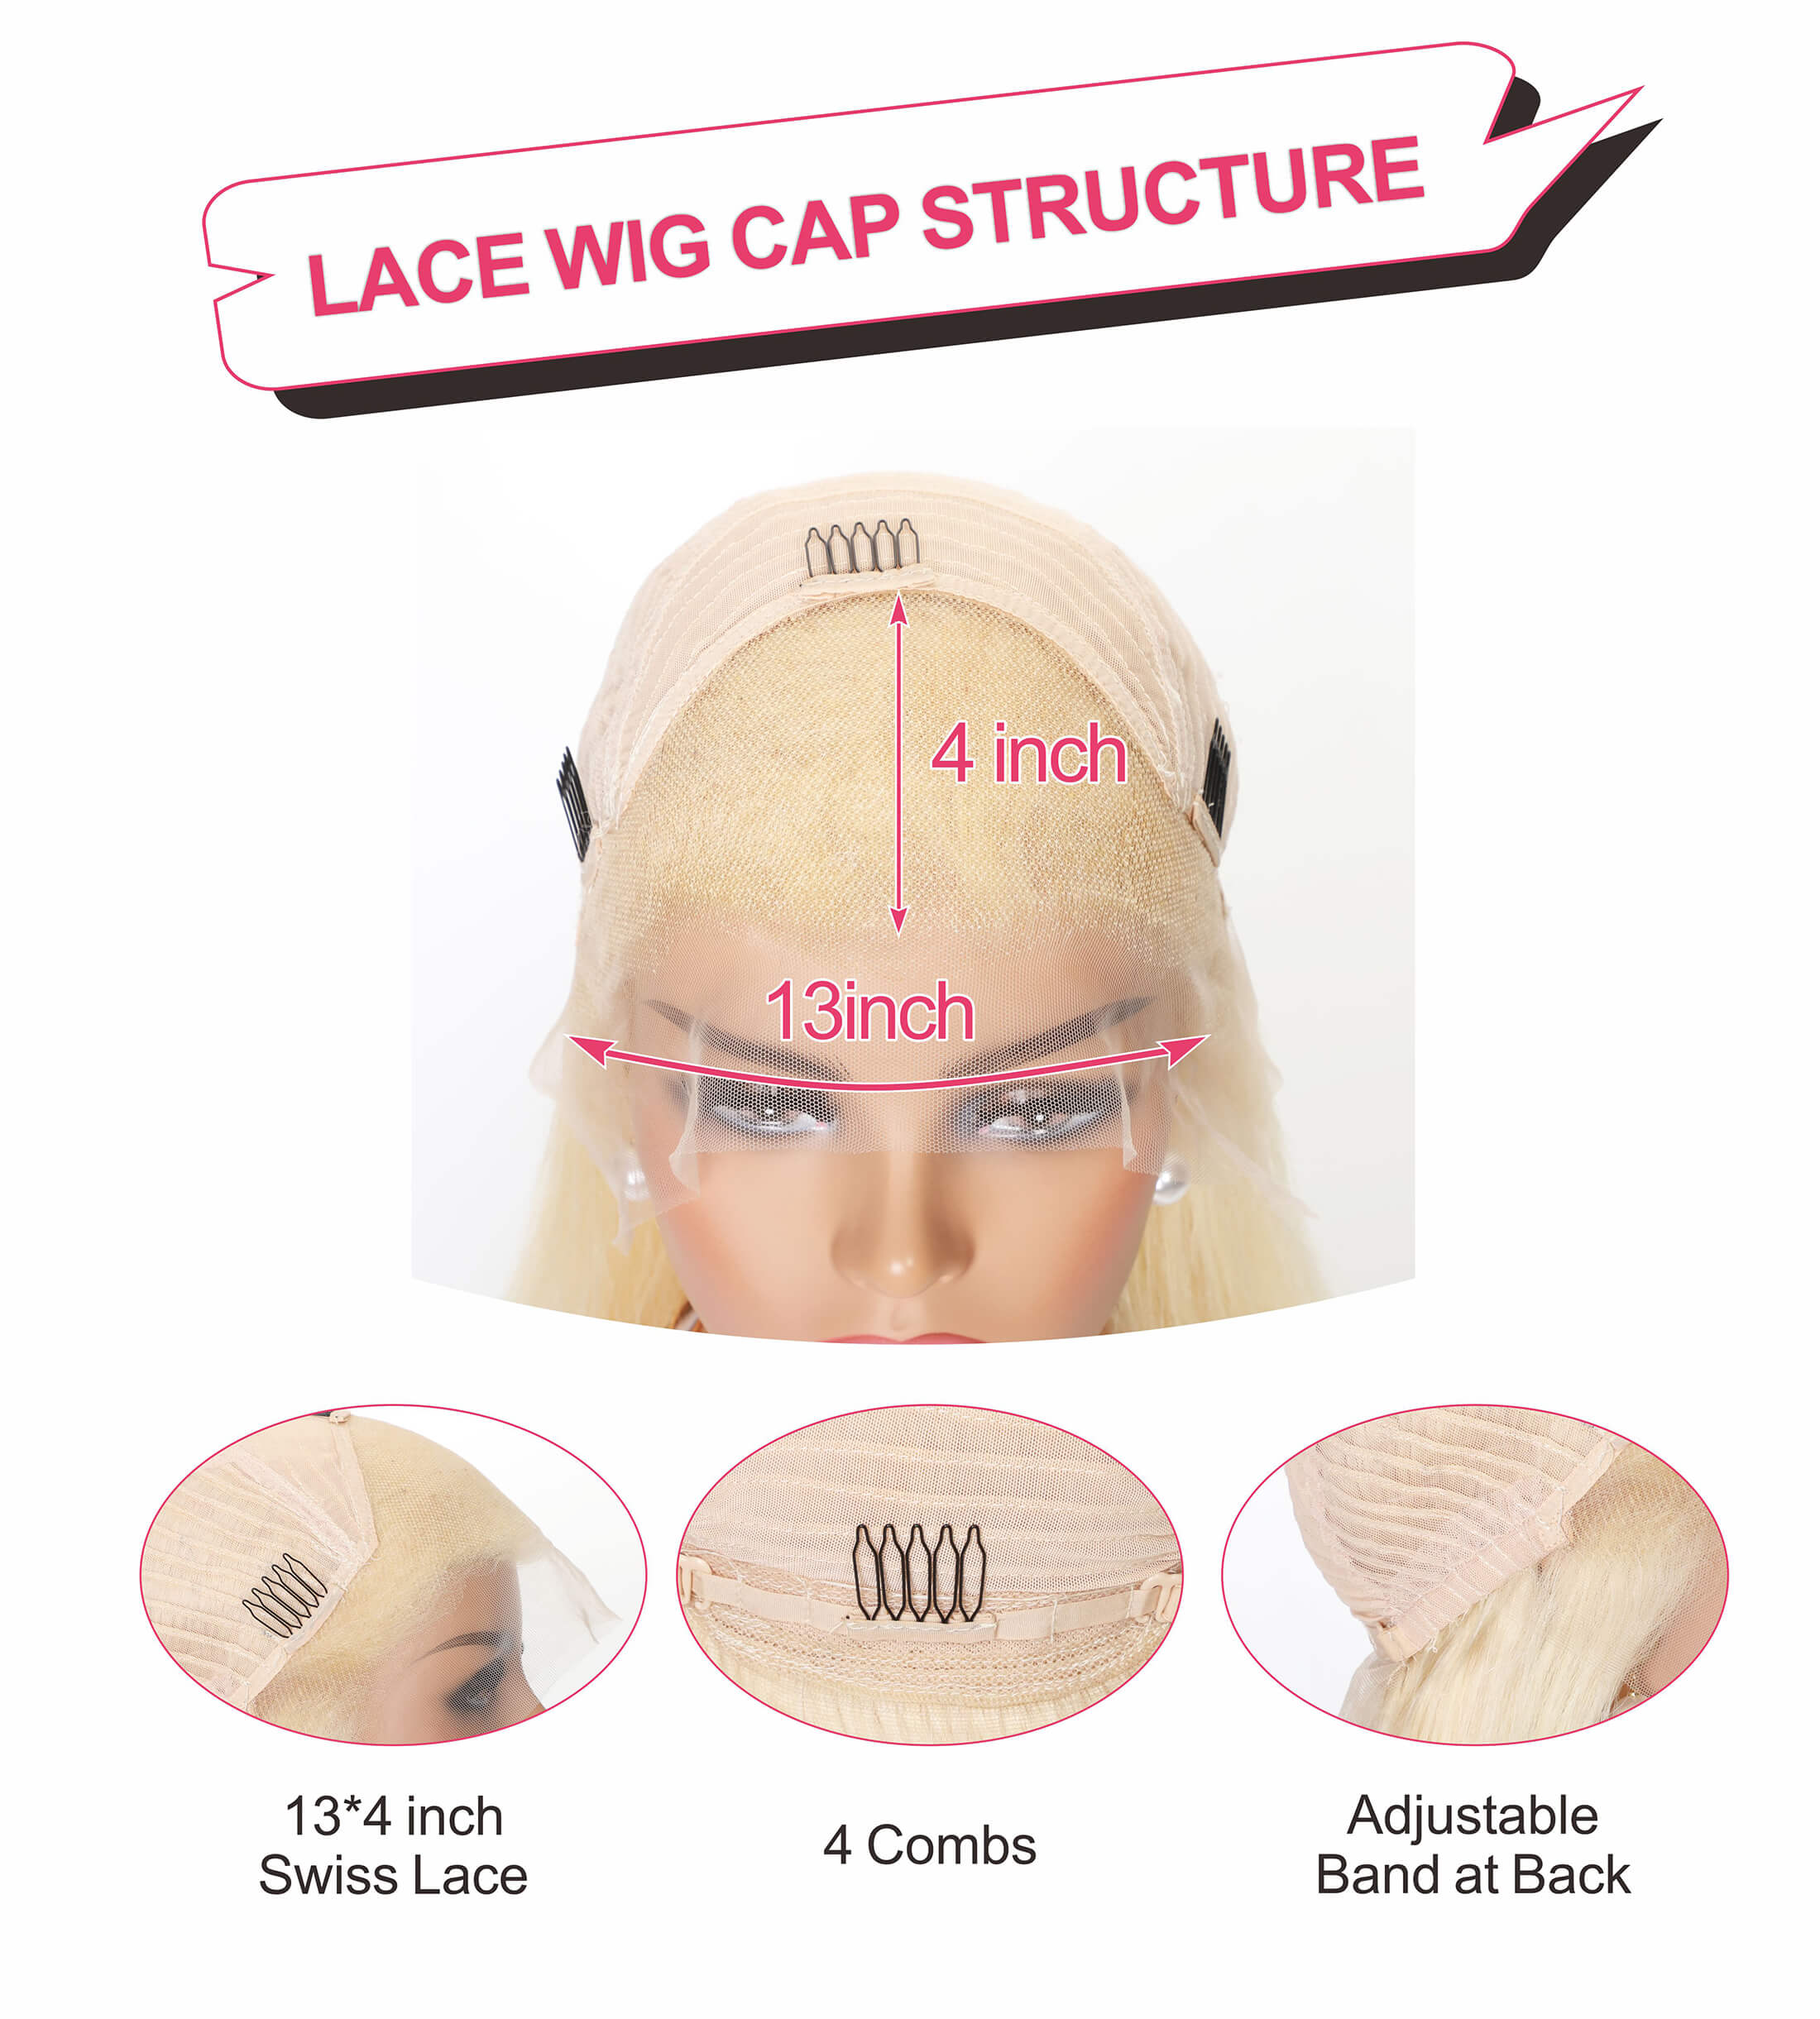 613 blonde hair wig lace cap